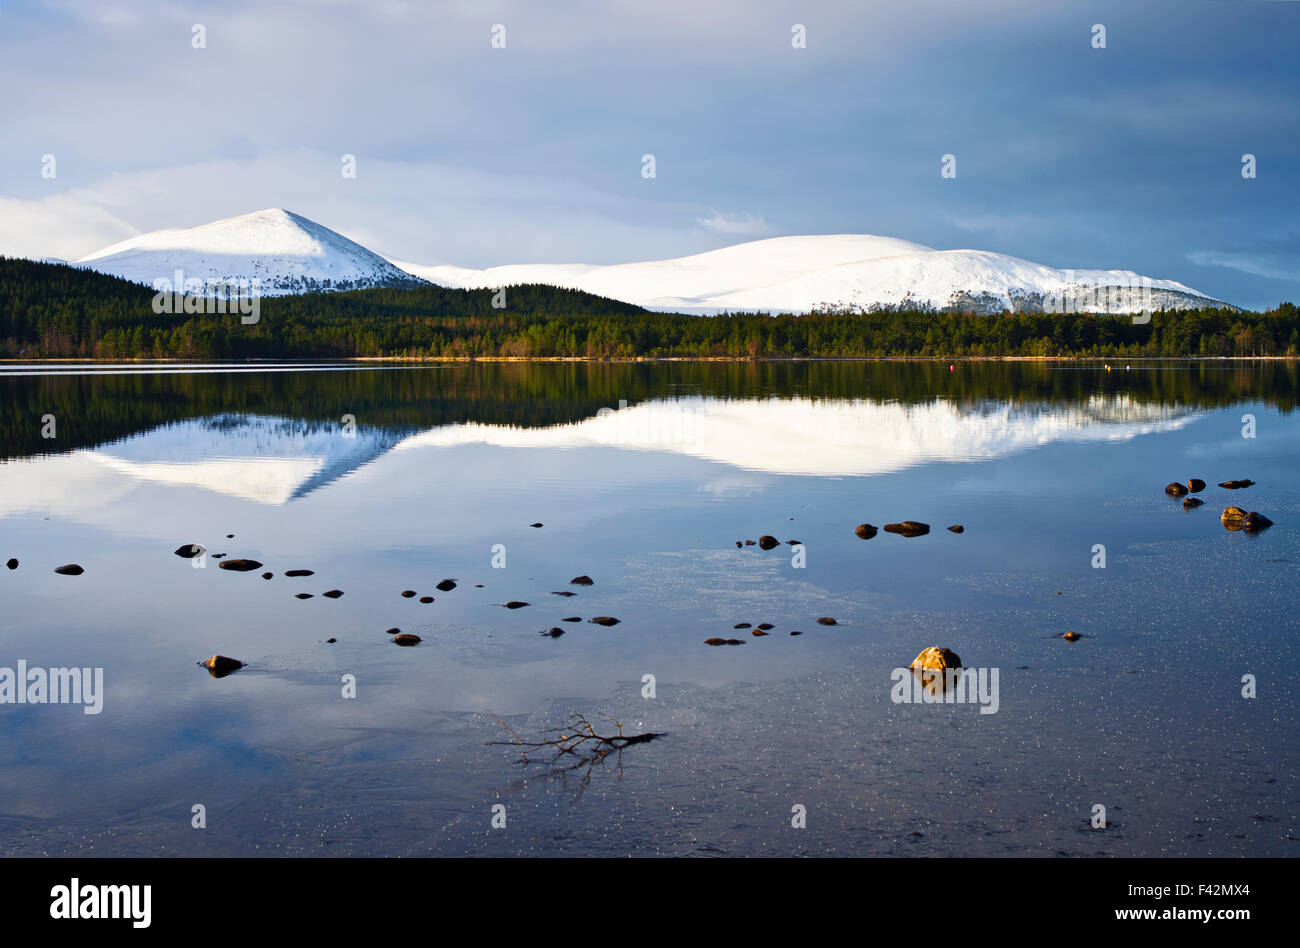 Snowy Carn Eilrig reflected in the calm waters of Loch Morlich, winter, Cairngorms  Scottish Highlands, Scotland - Stock Image